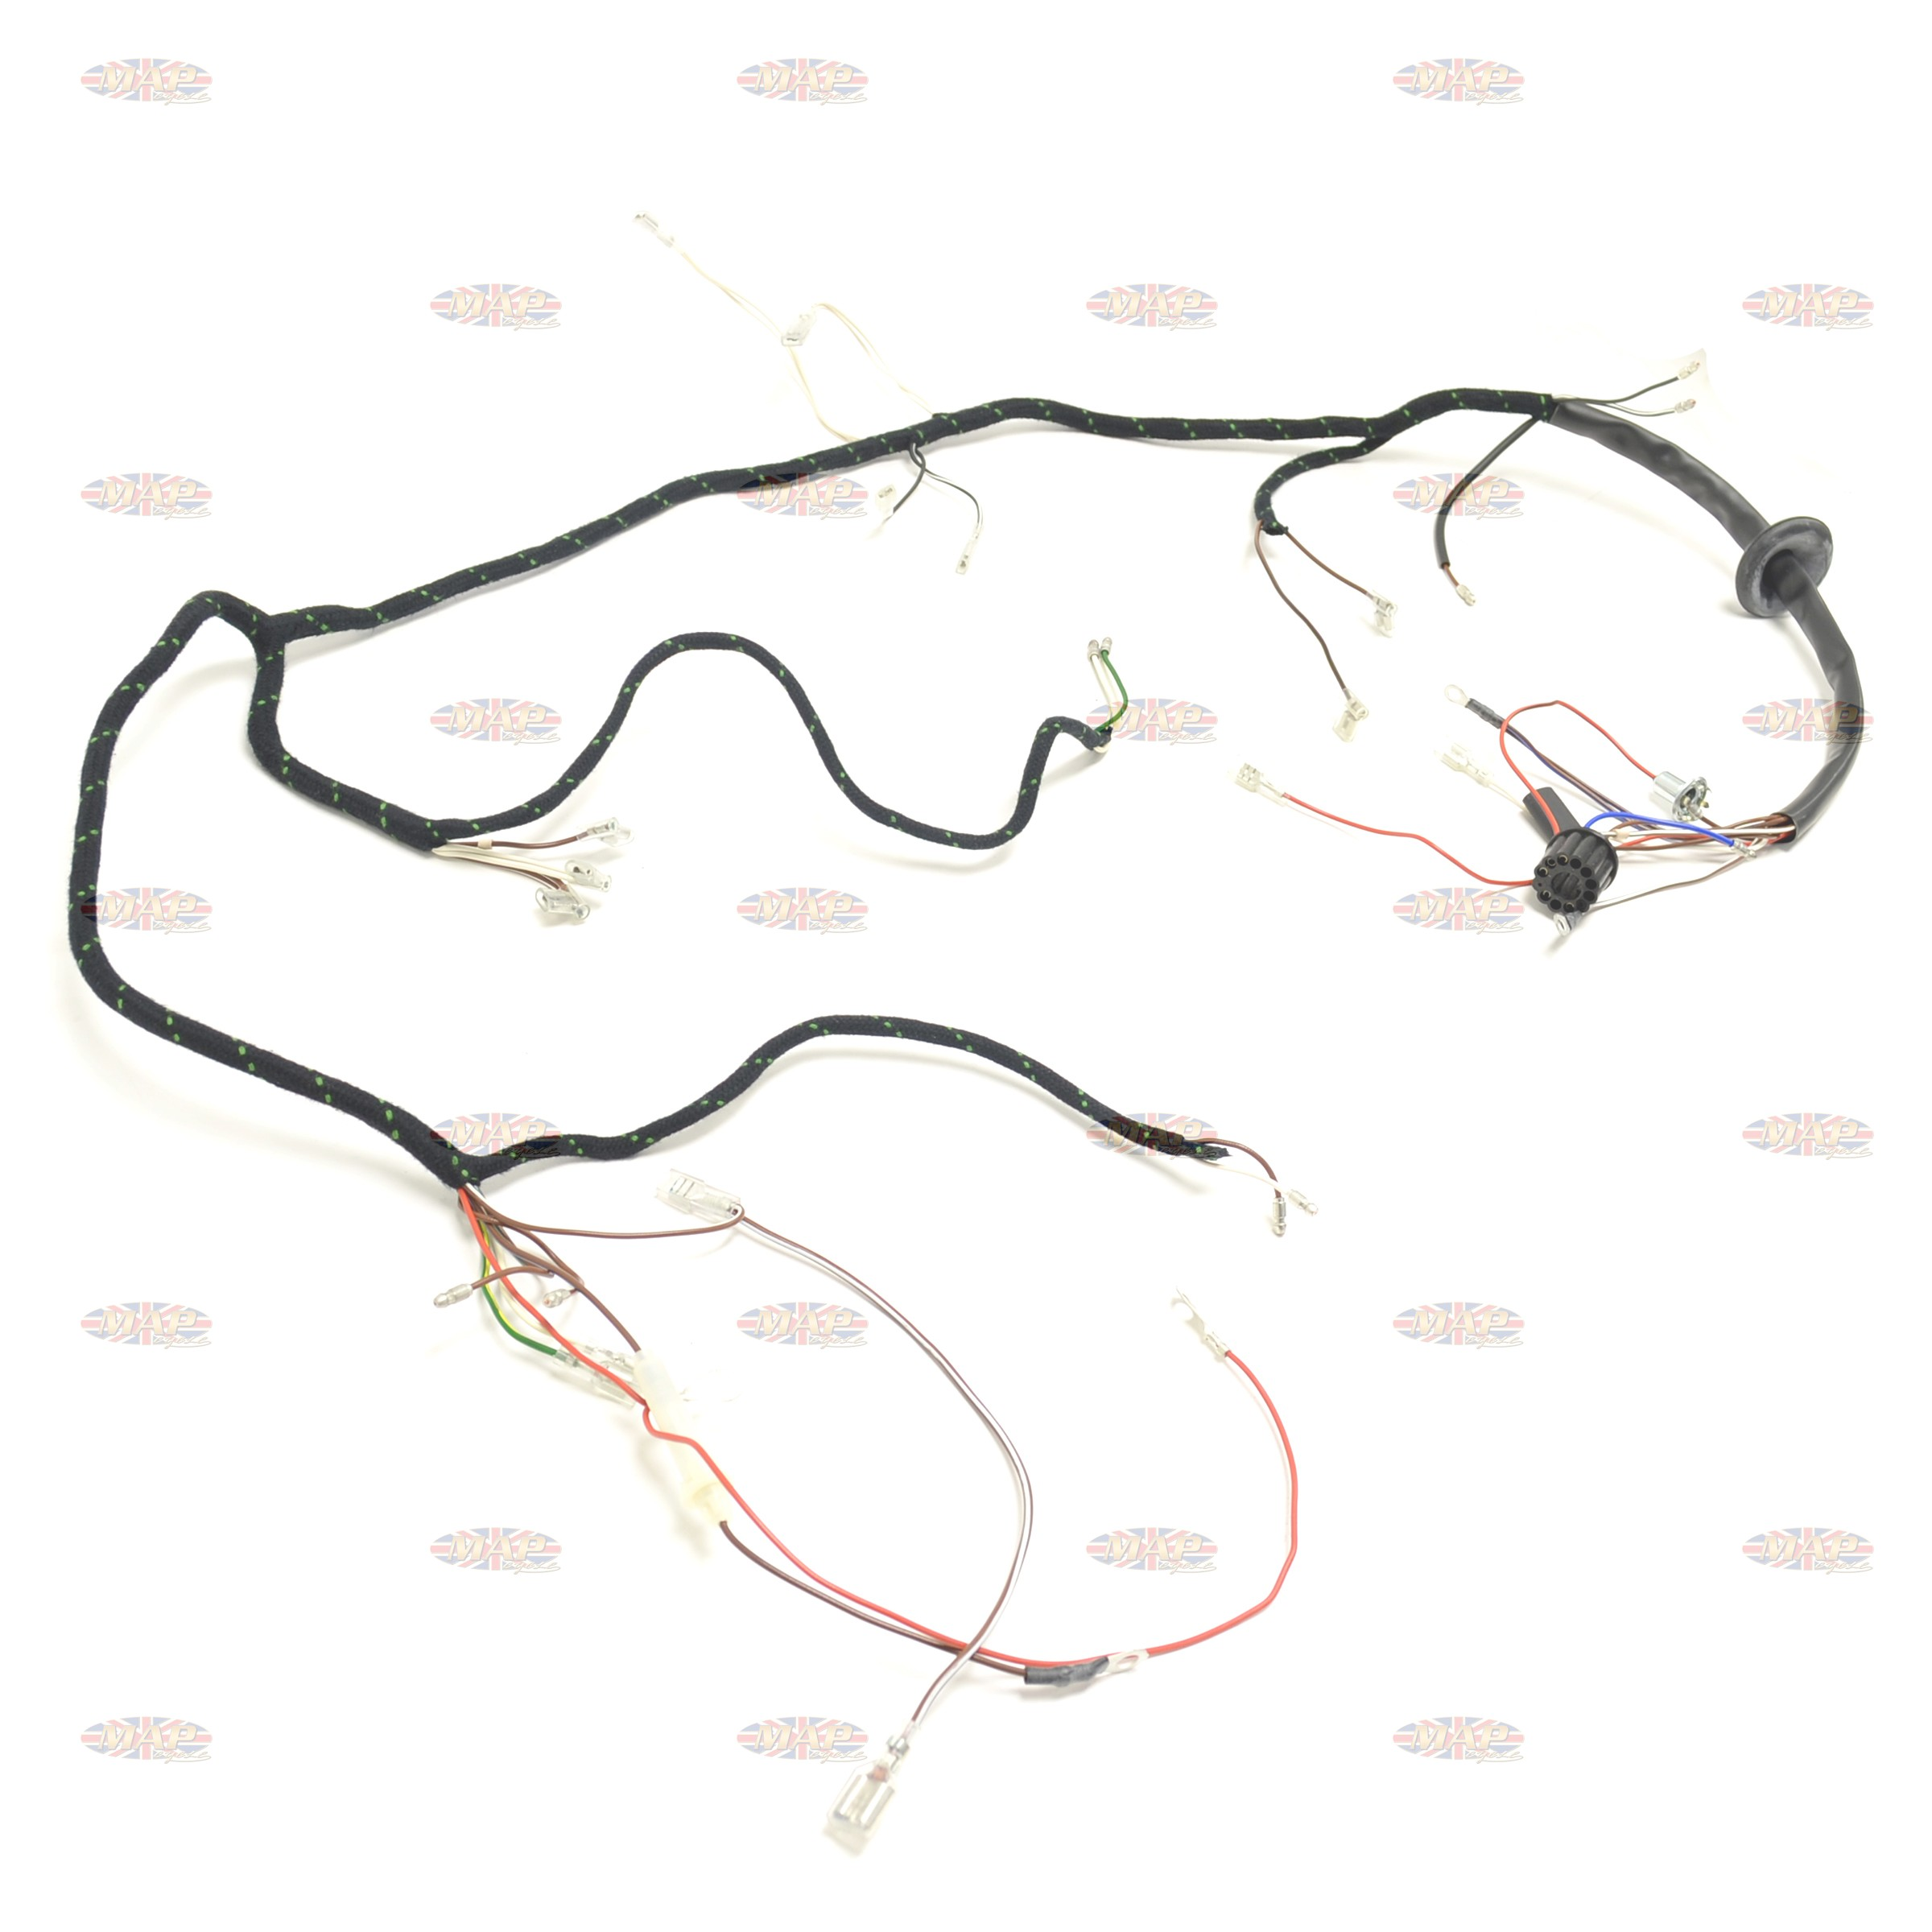 triumph 1967 t90 t100 t120 tr6 uk made quality wiring harness 1f1 triumph 1967 t90 t100 t120 tr6 uk made quality wiring harness triumph t140 wiring harness at couponss.co